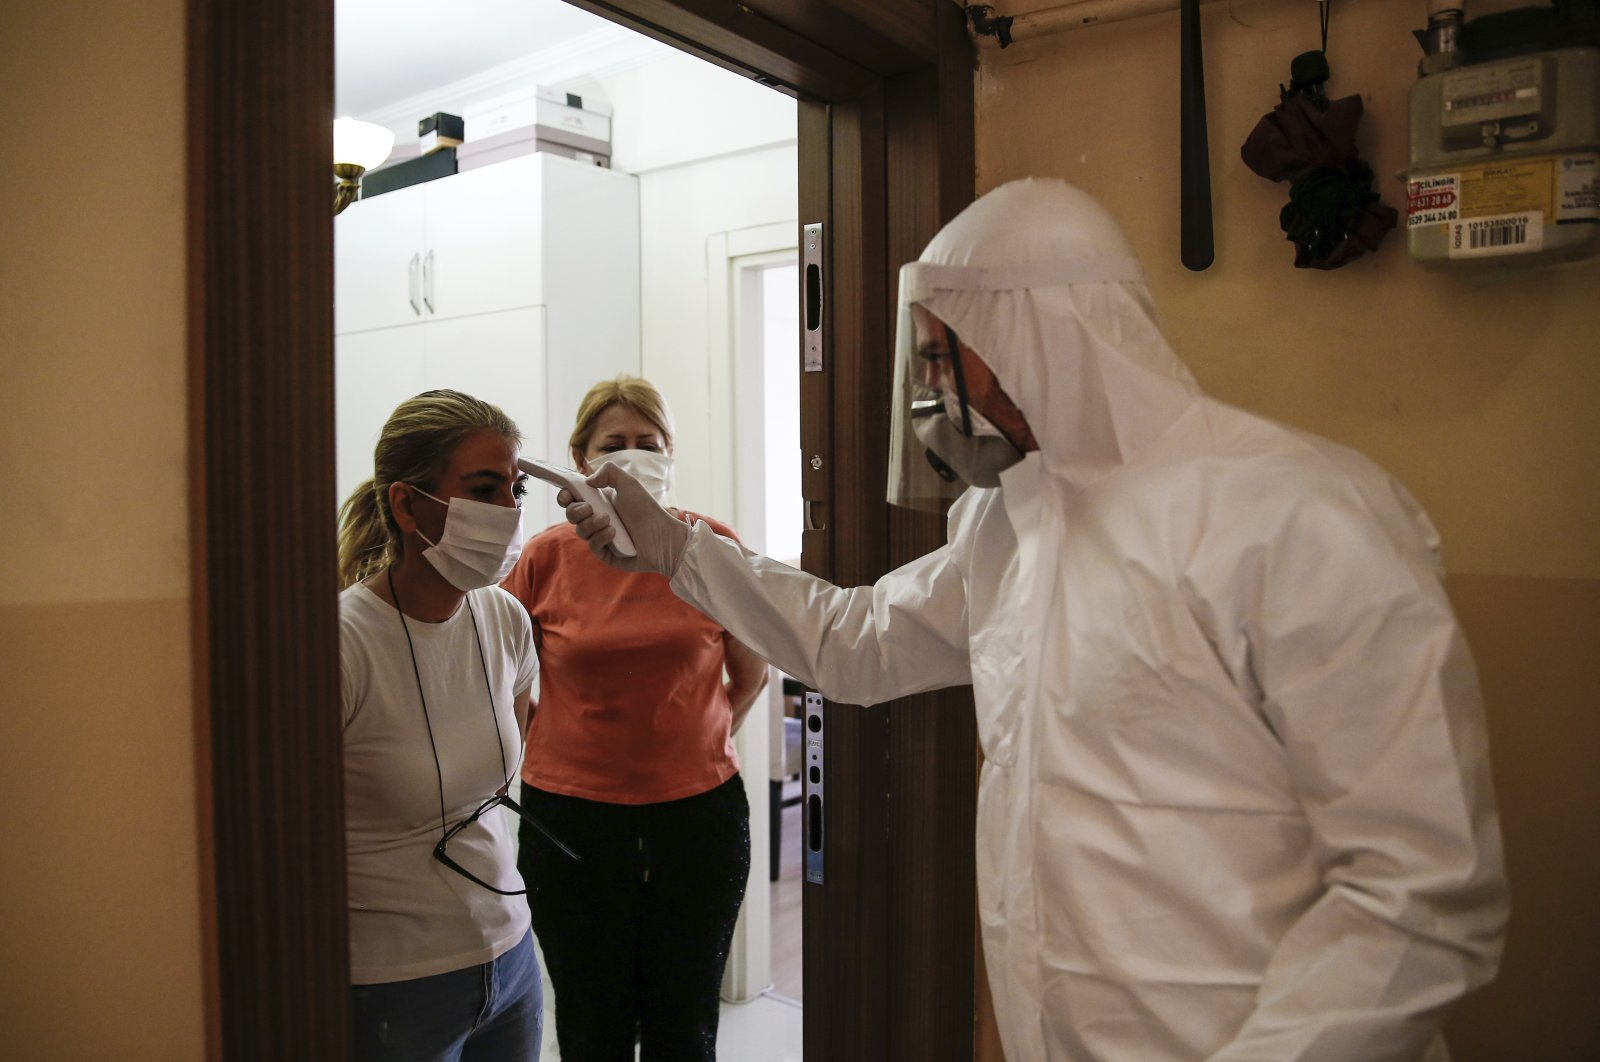 A contact tracer takes the temperature of Betül Şahbaz (L) who had been experiencing COVID-19 symptoms, in Istanbul, Turkey, May 15, 2020. (AP Photo)